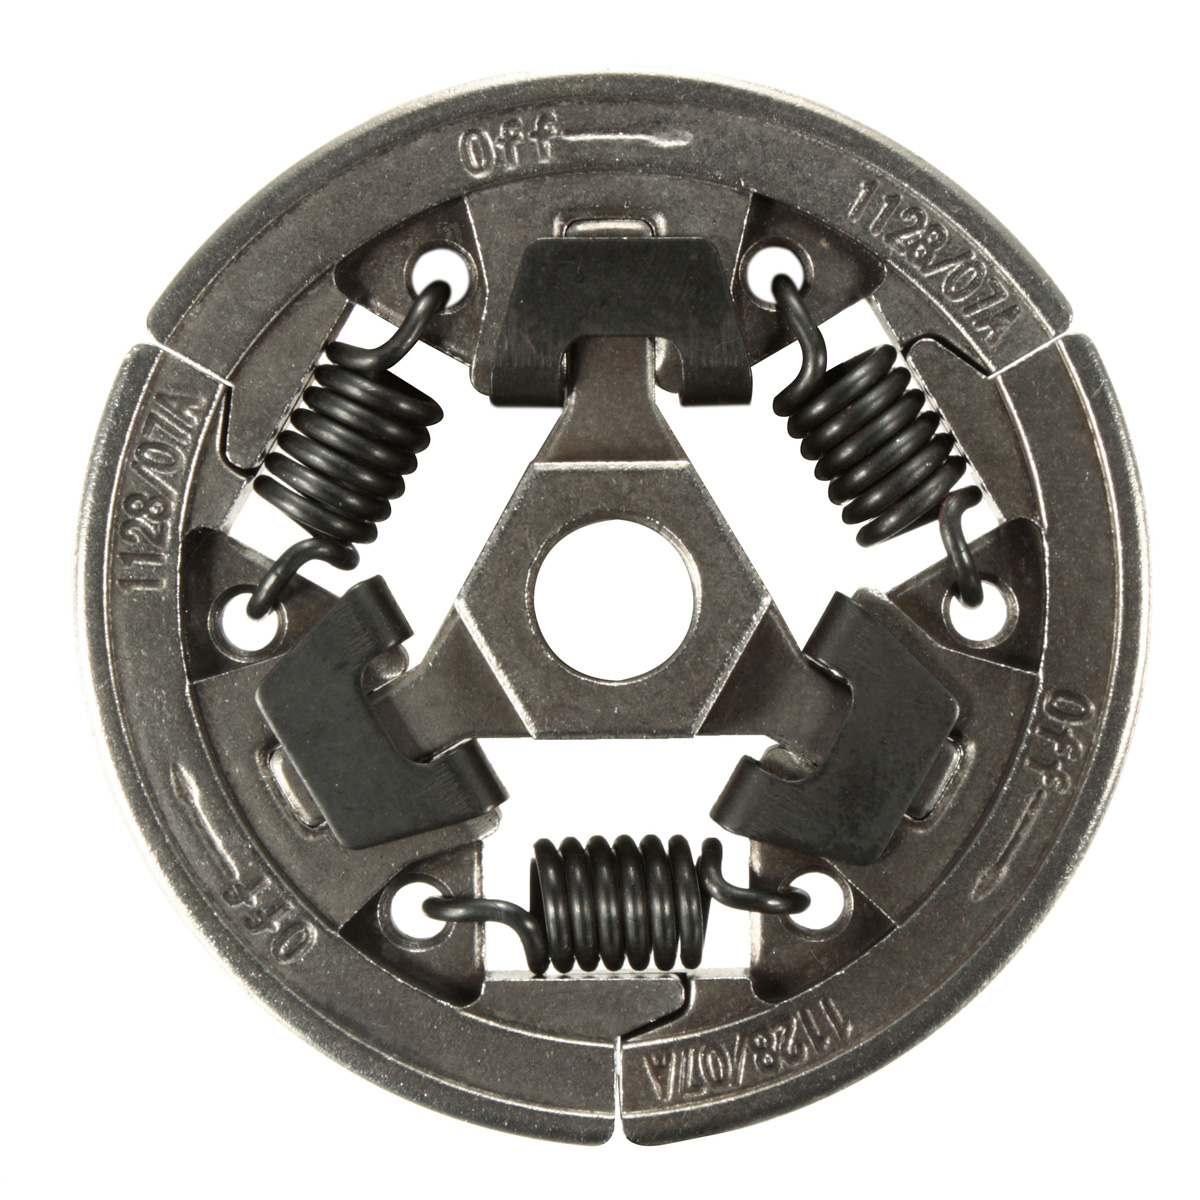 Buy Clutch Assembly For Stihl Chainsaw TS400 TS410 TS420